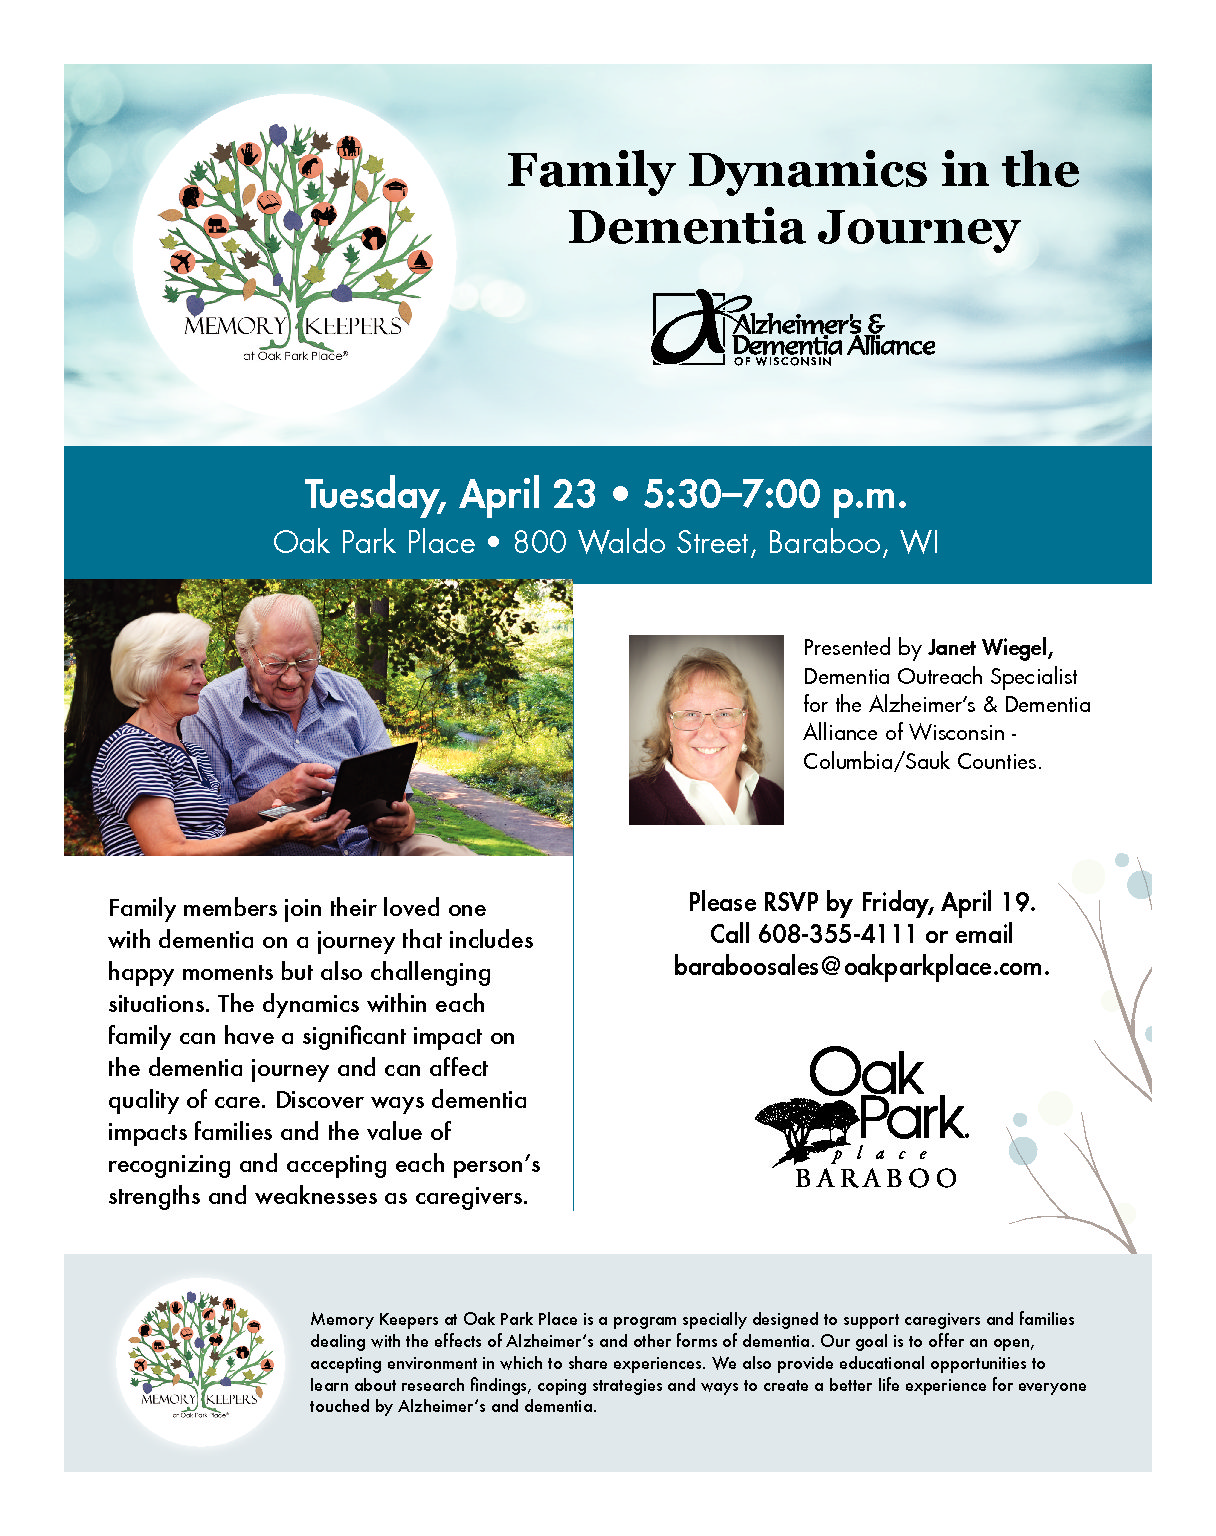 Dating dementia Madison Wi